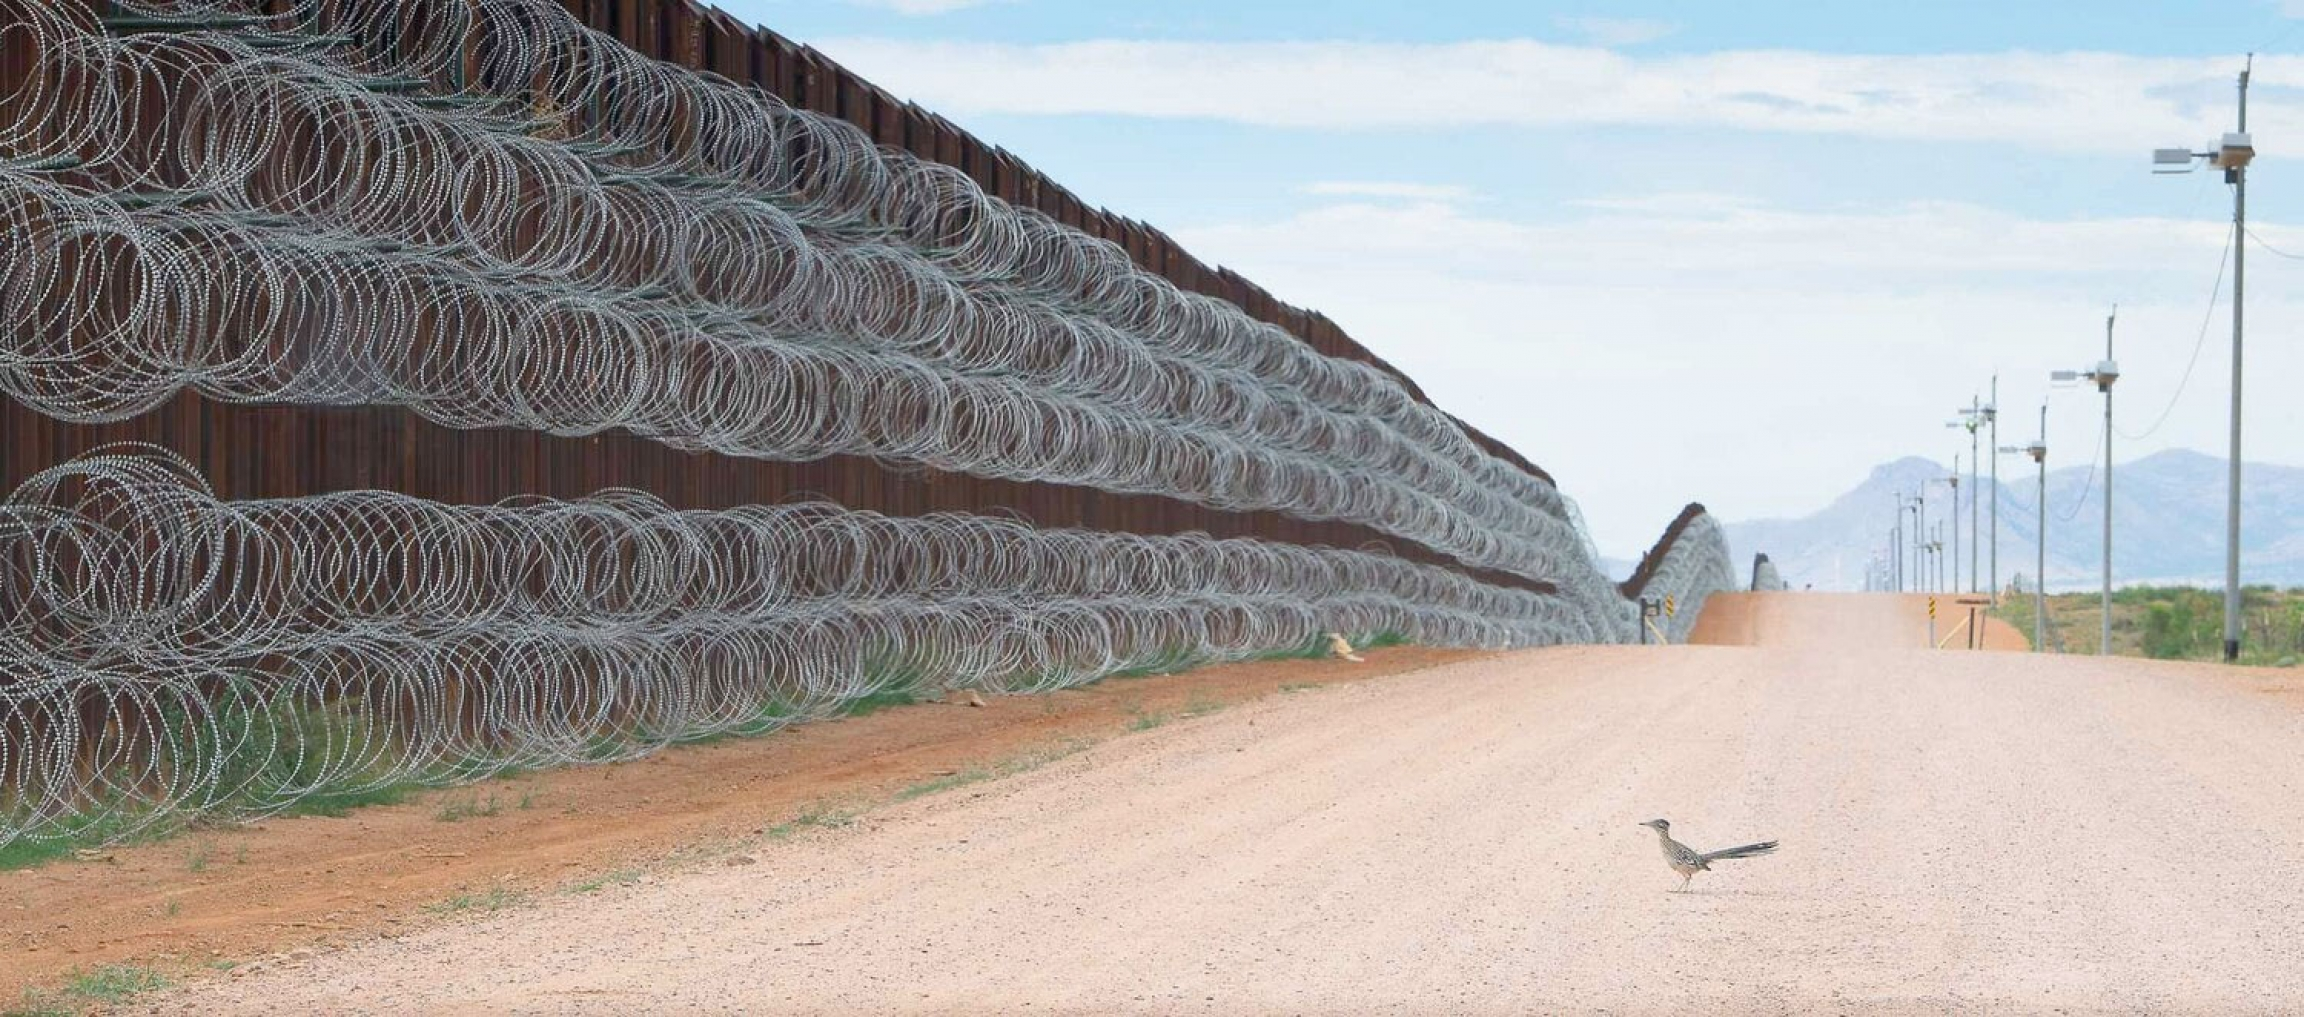 Mexican side if the border